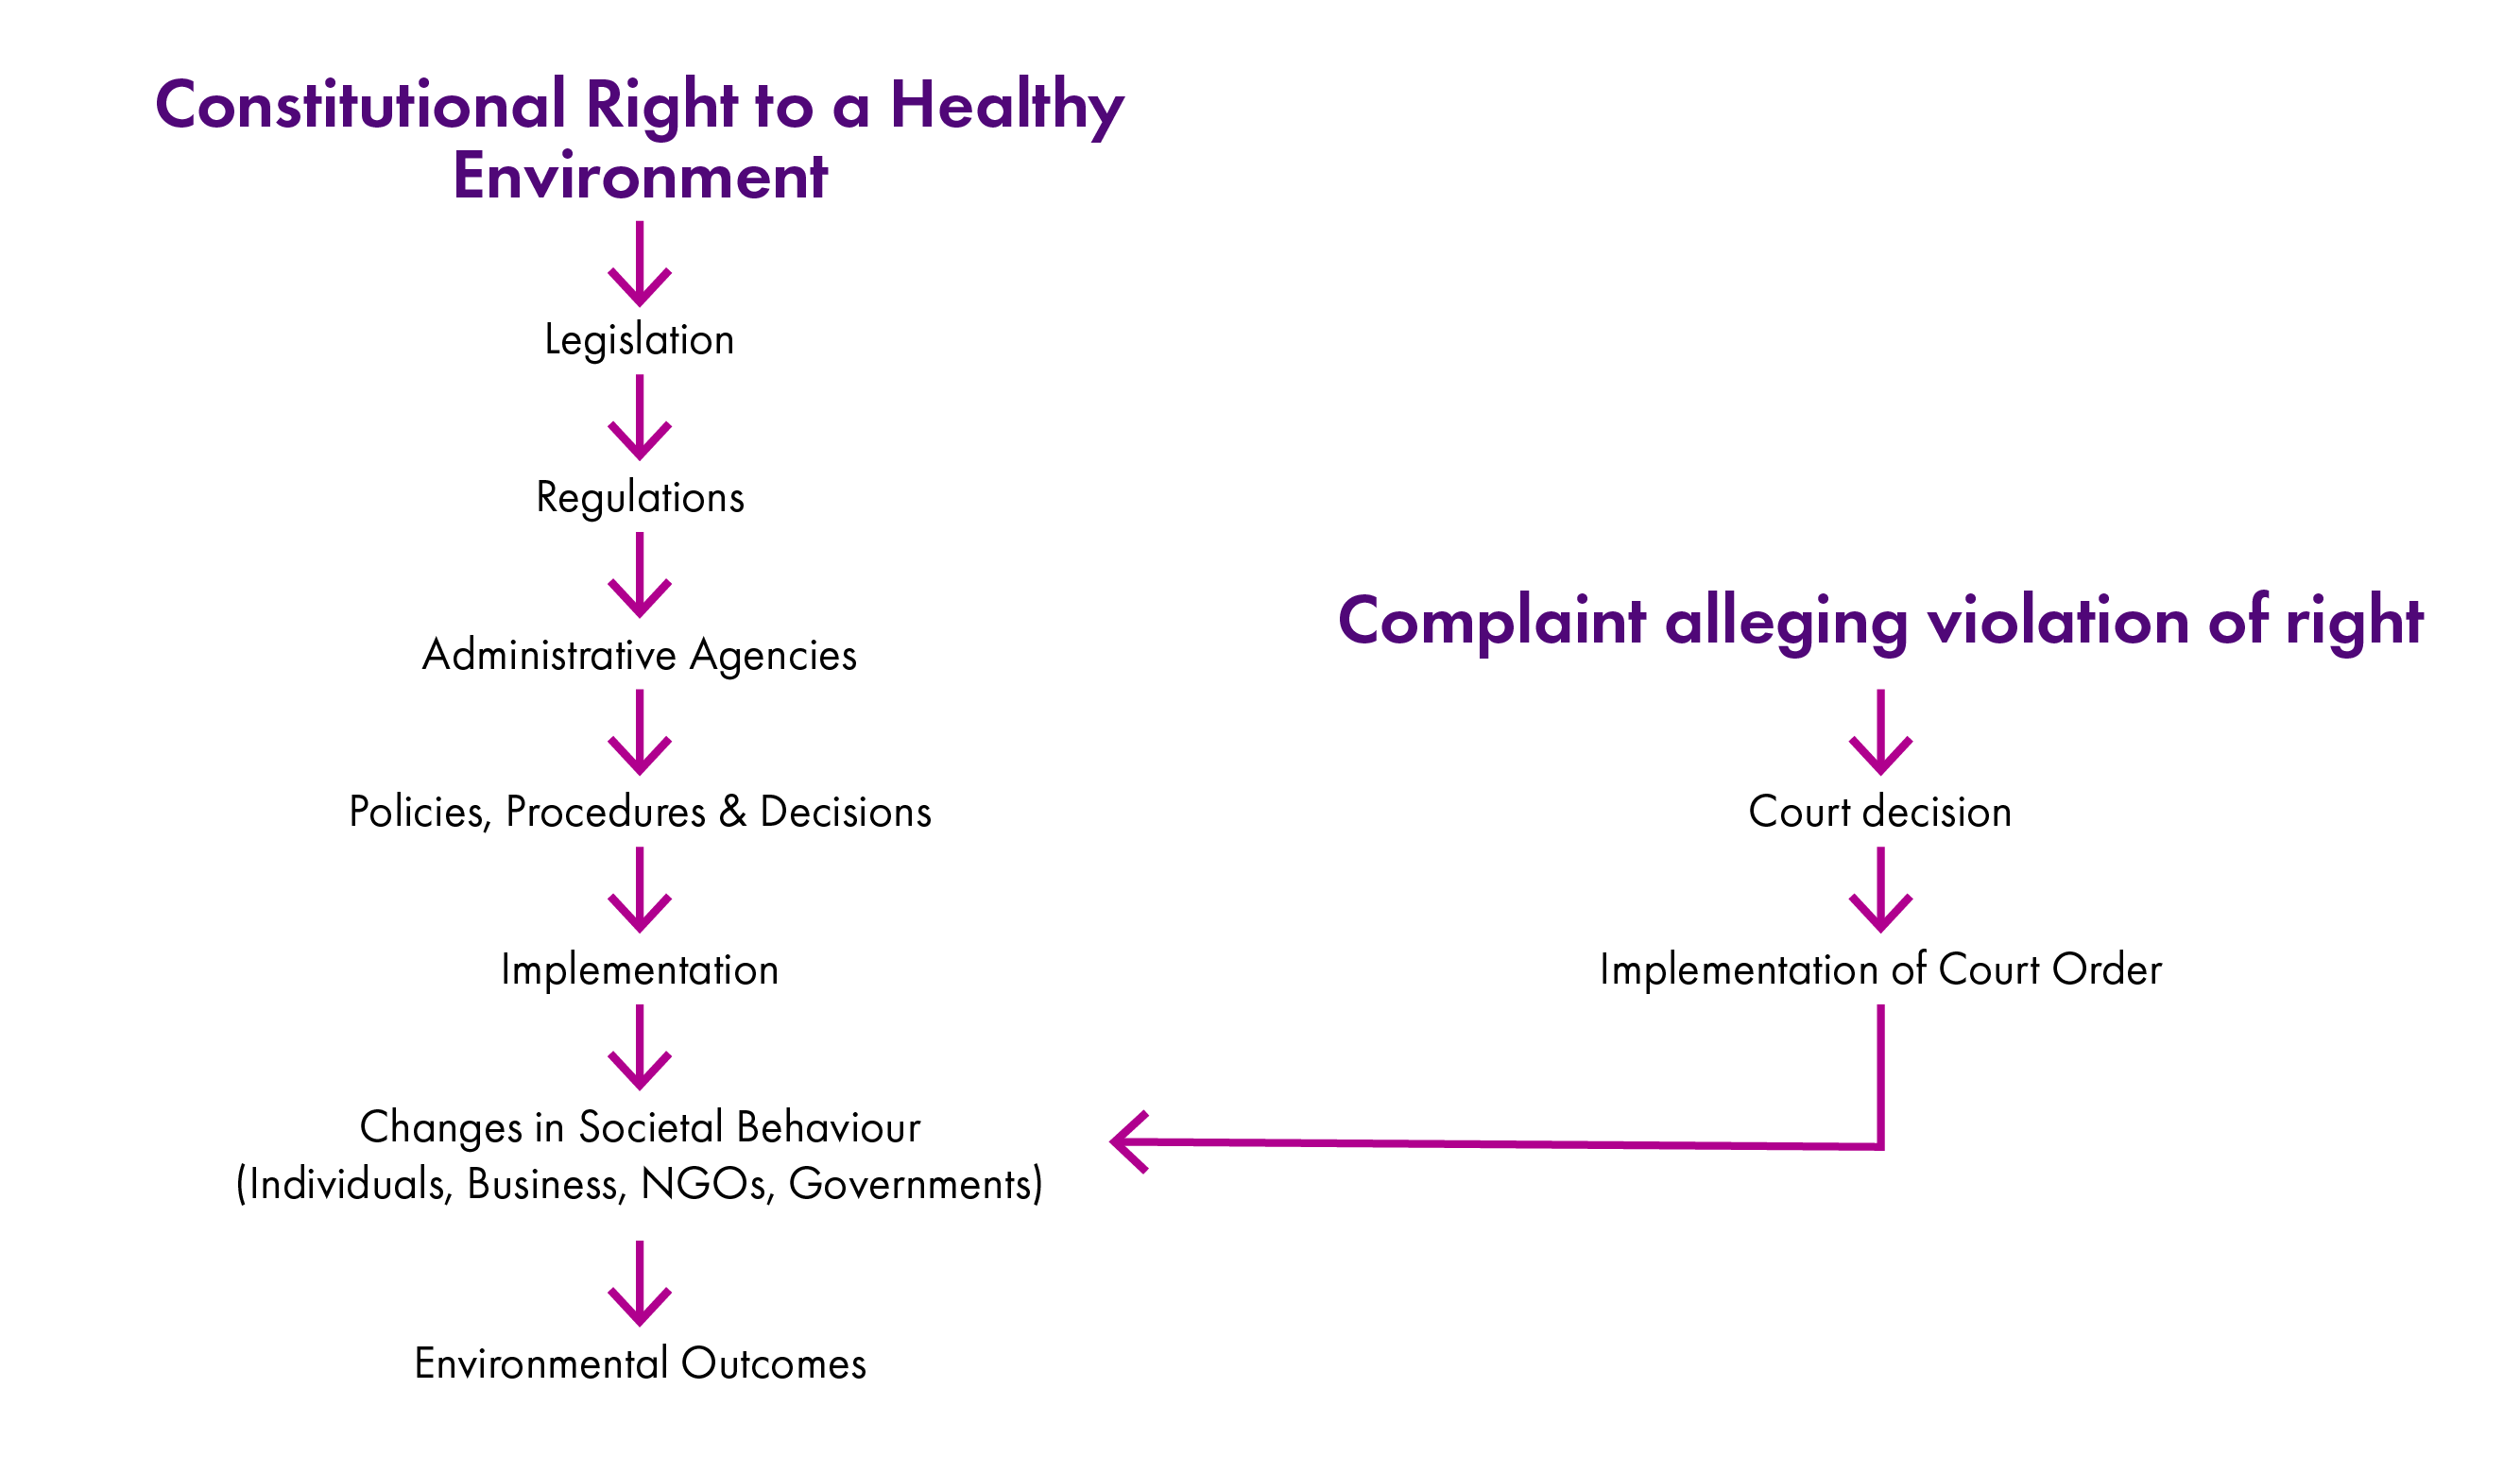 Flowchart detailing sequence of events from a constitutional environmental right to environmental outcomes.